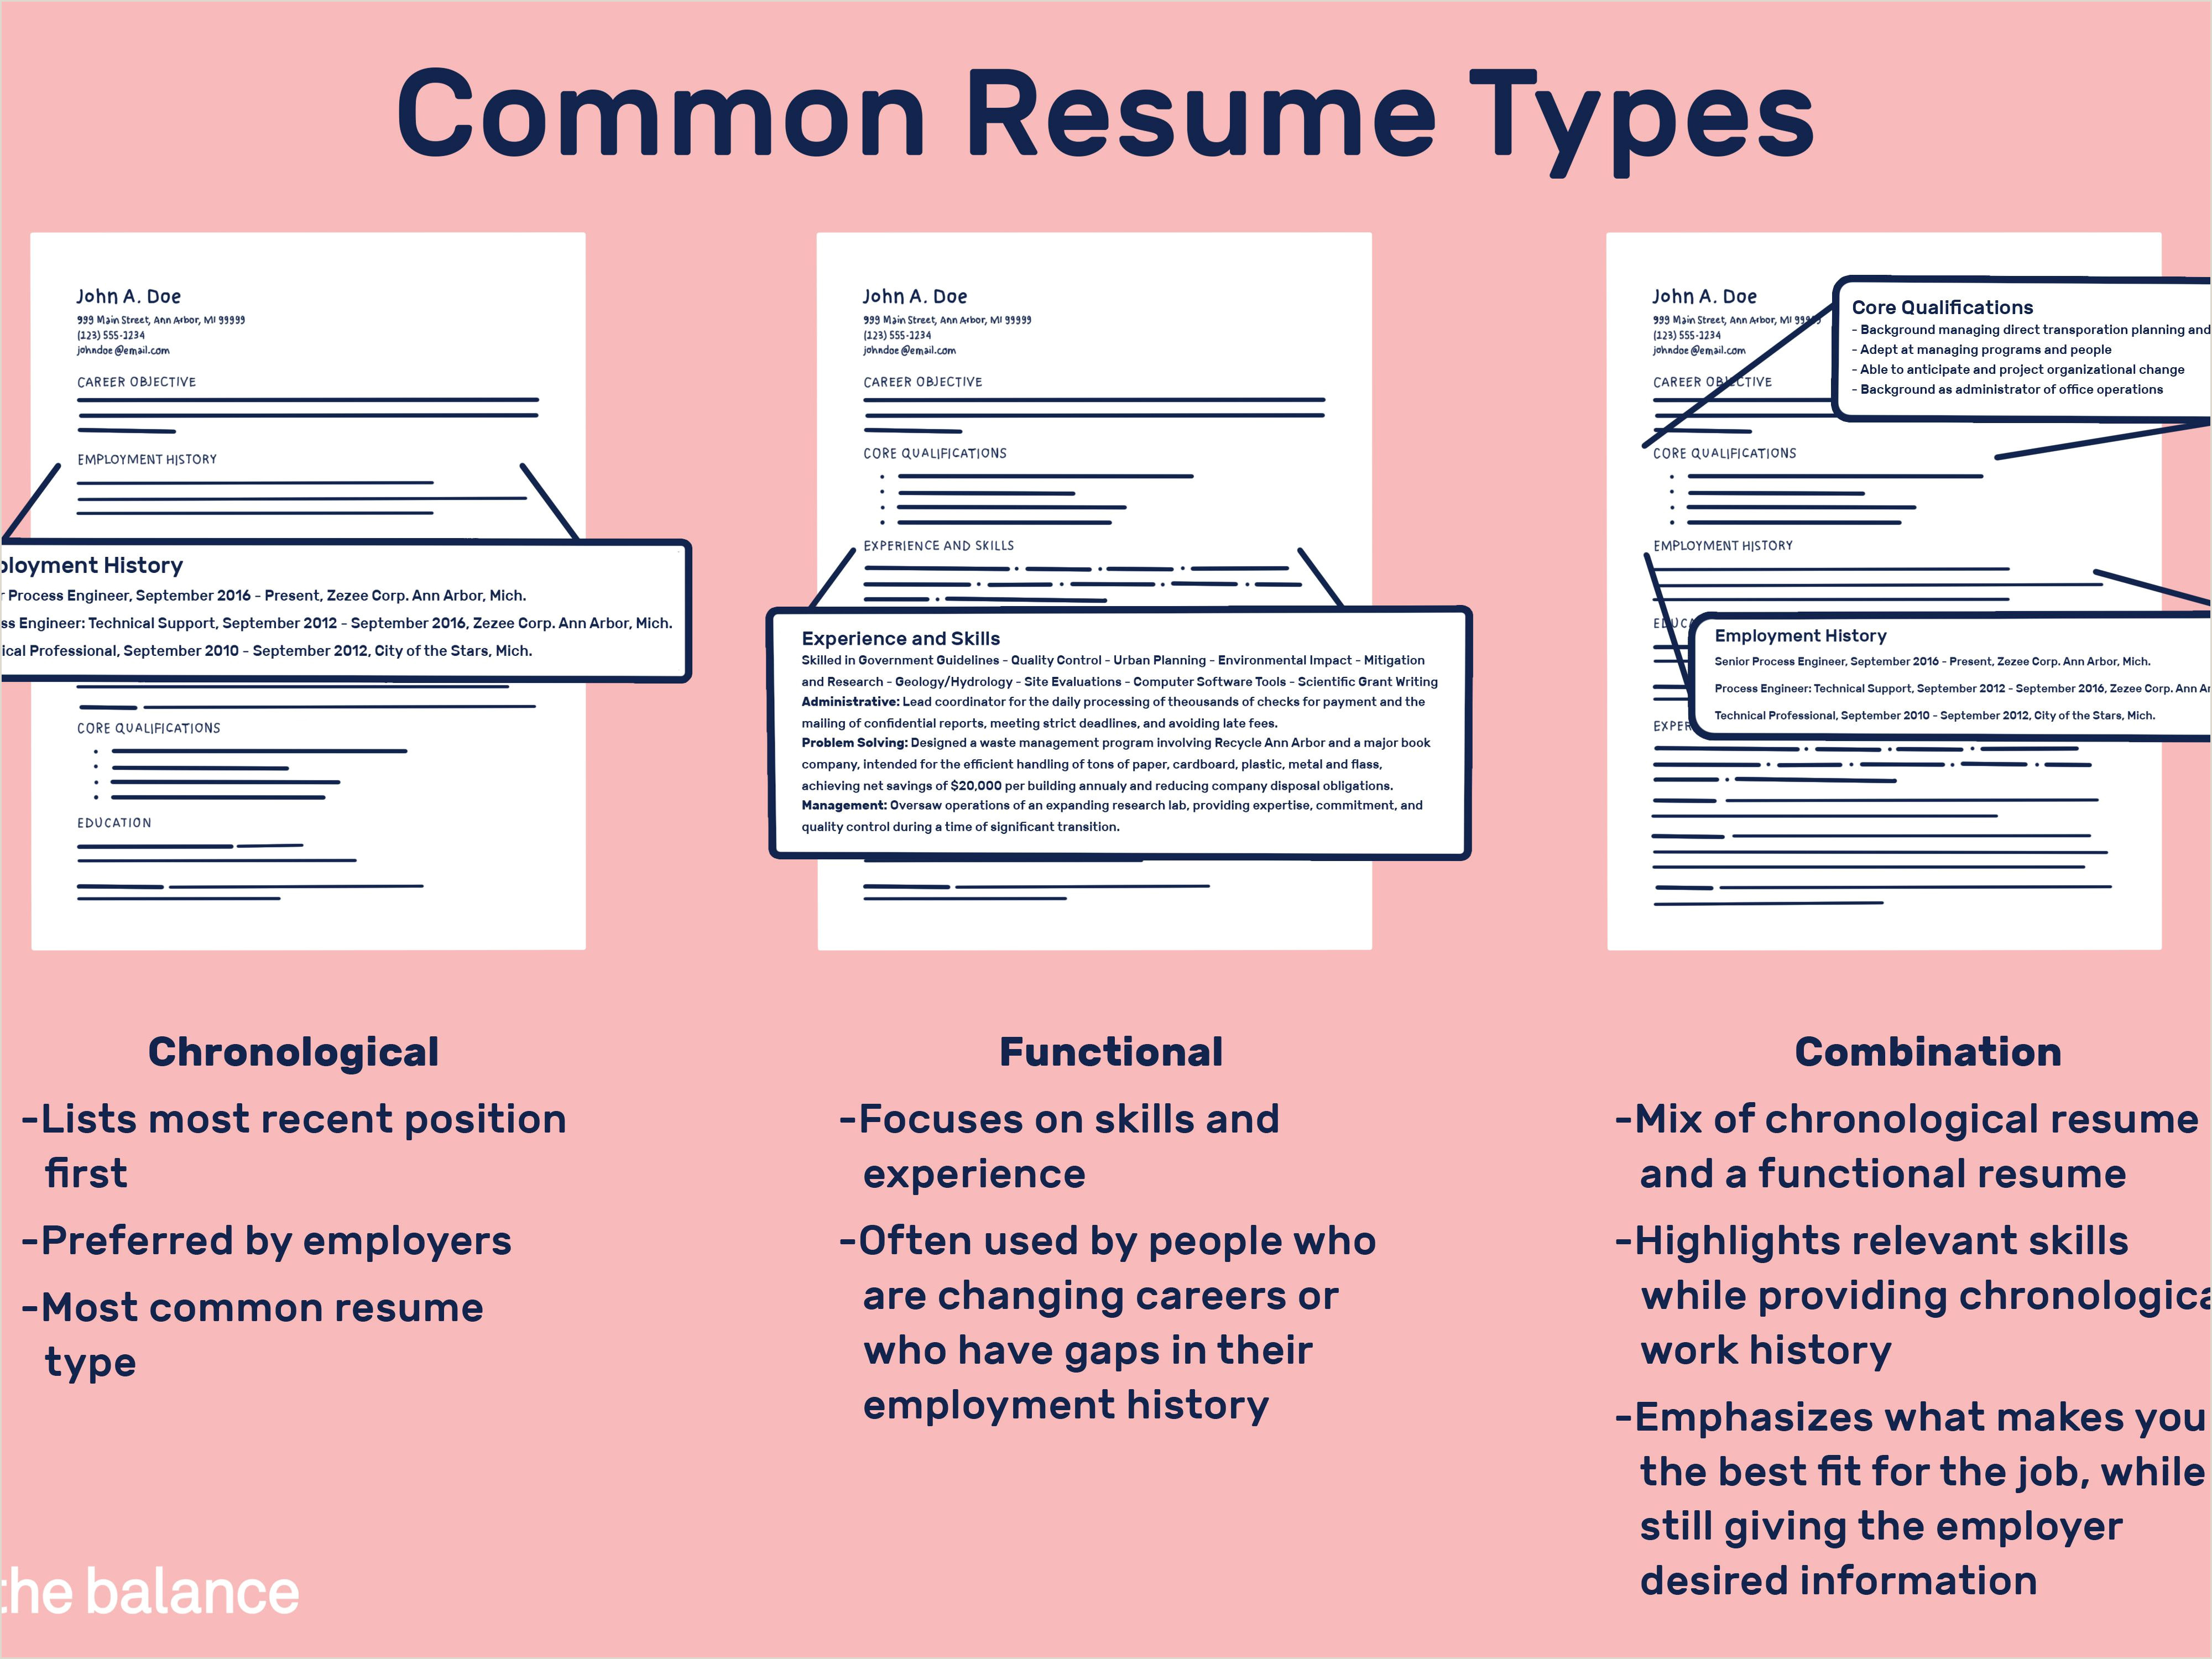 Cv format for Job Interview Different Resume Types